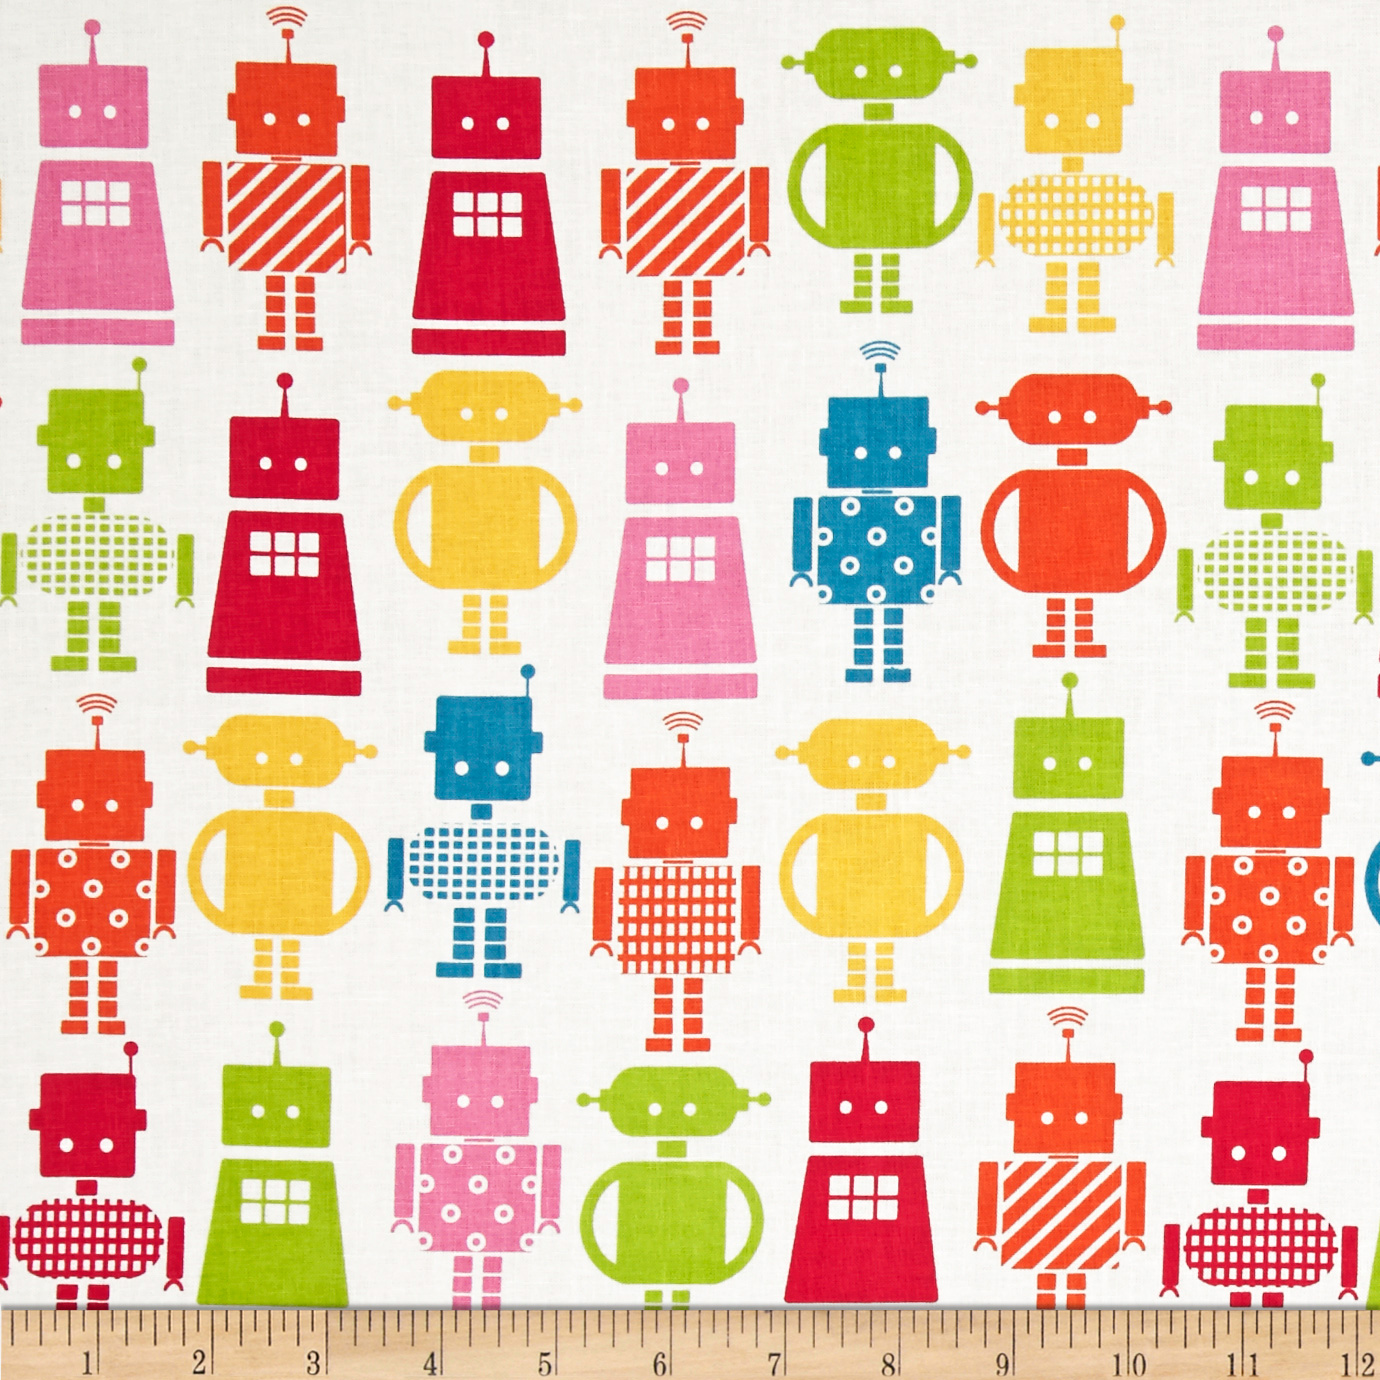 Funbots Large Robots Garden White Fabric